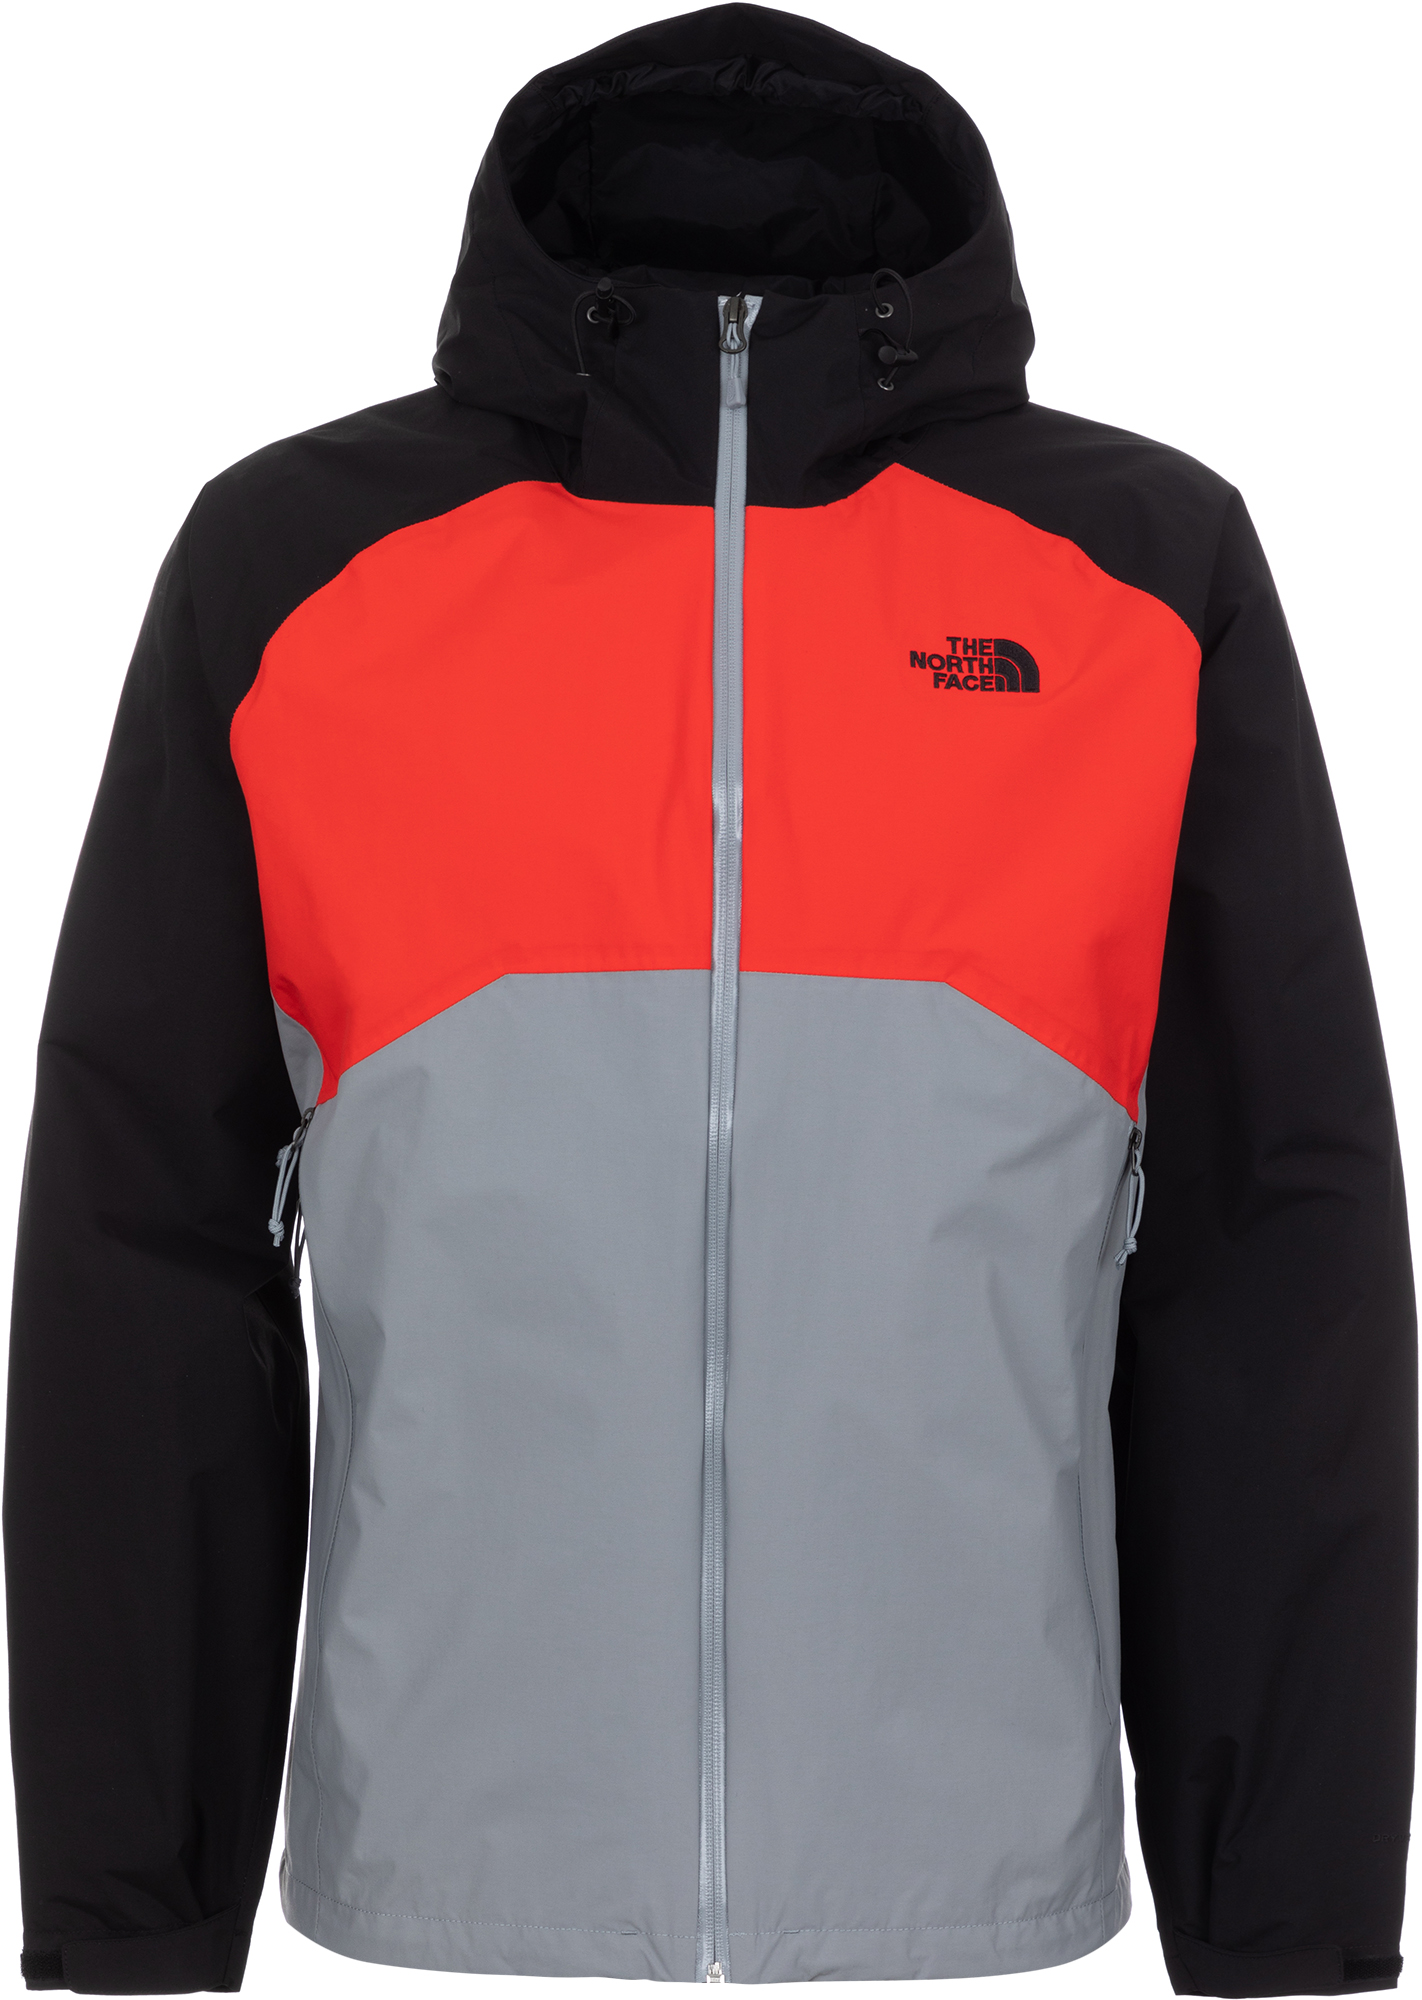 The North Face Ветровка мужская The North Face Stratos, размер 50 цена